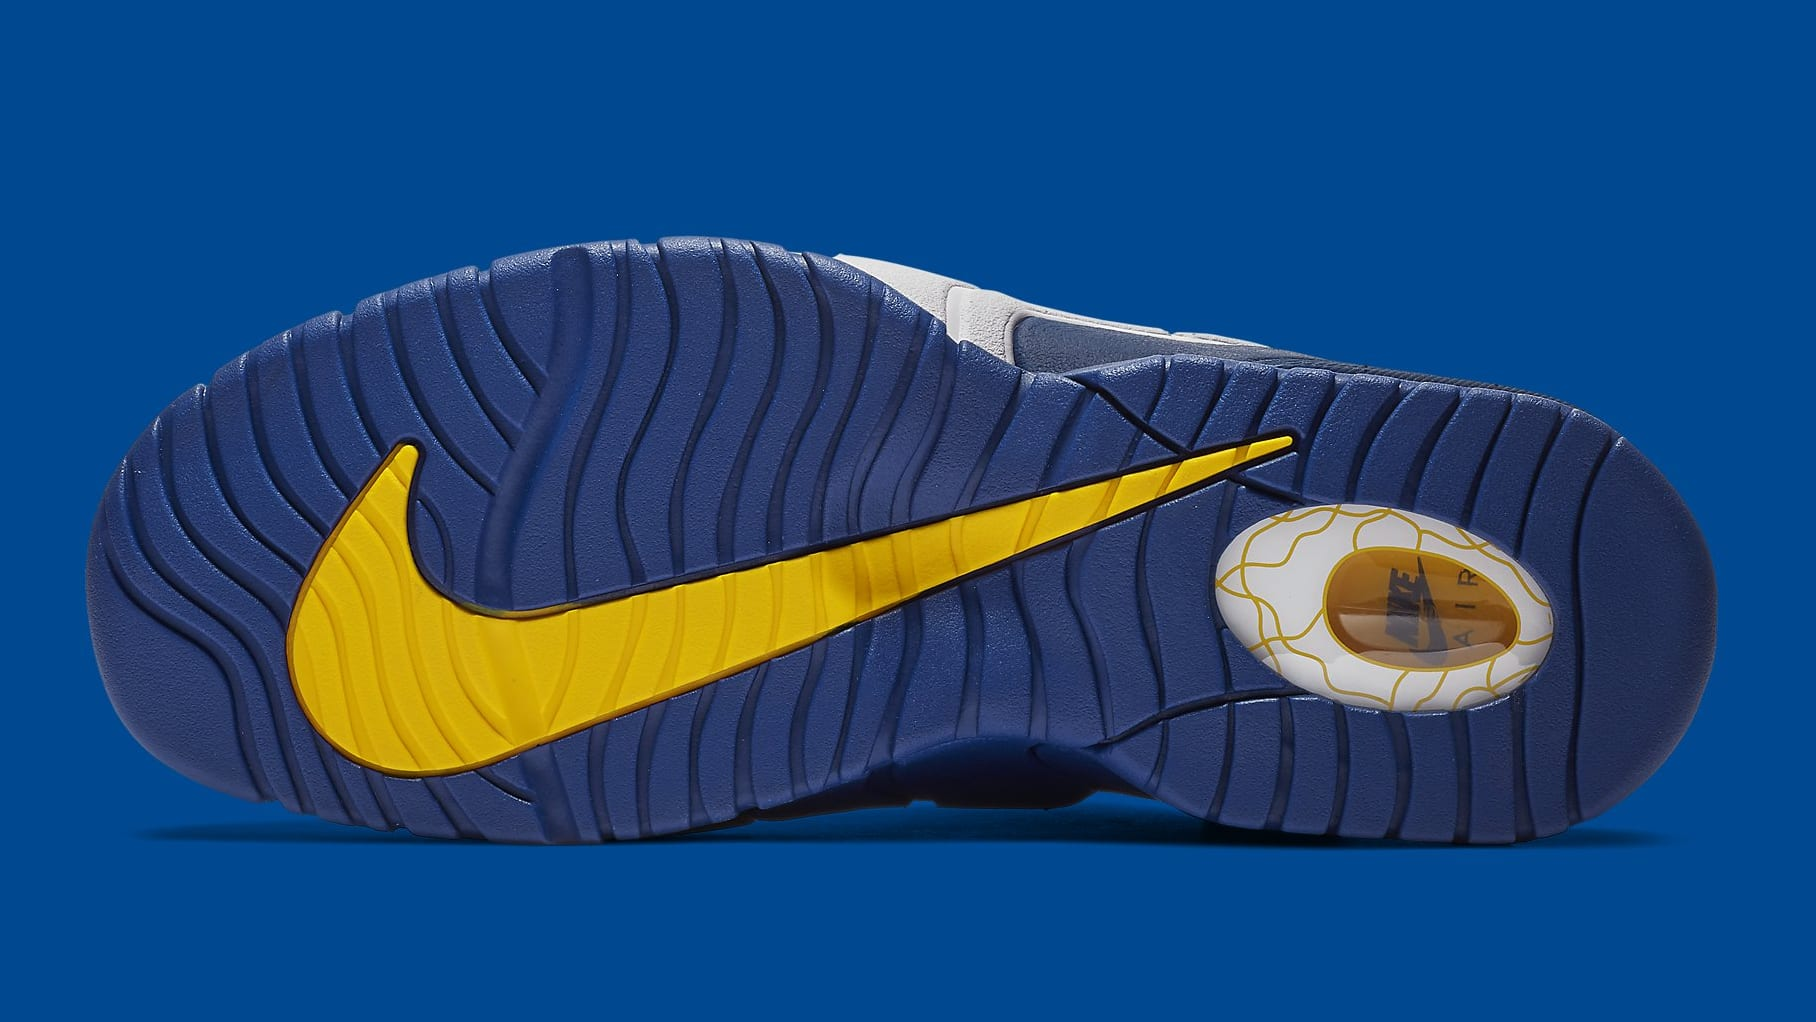 Nike Air Max Penny 1 Warriors Release Date 685153-401 Sole